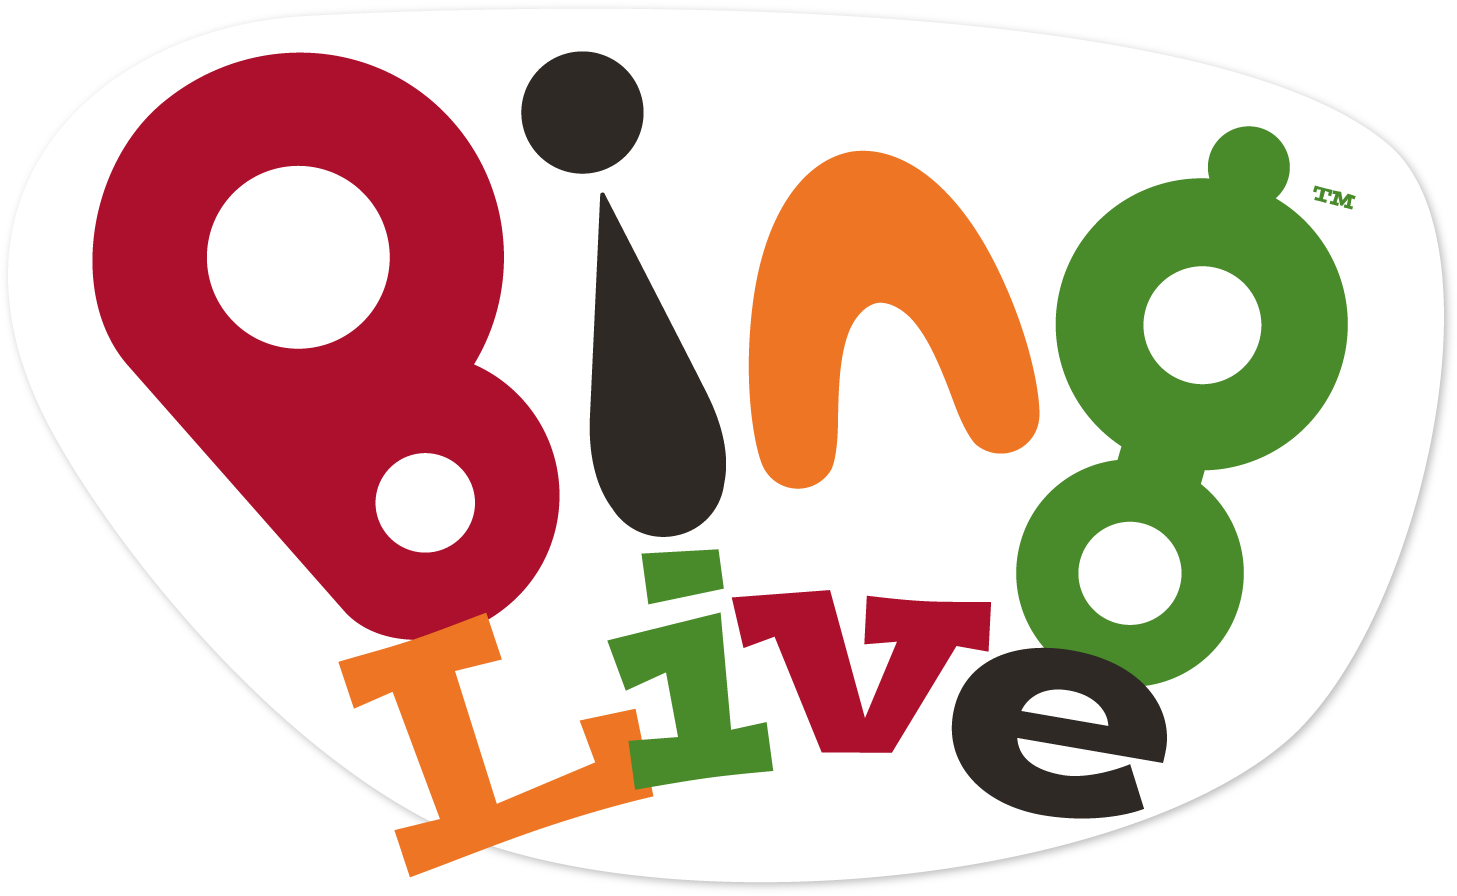 Bing Live Clipart.